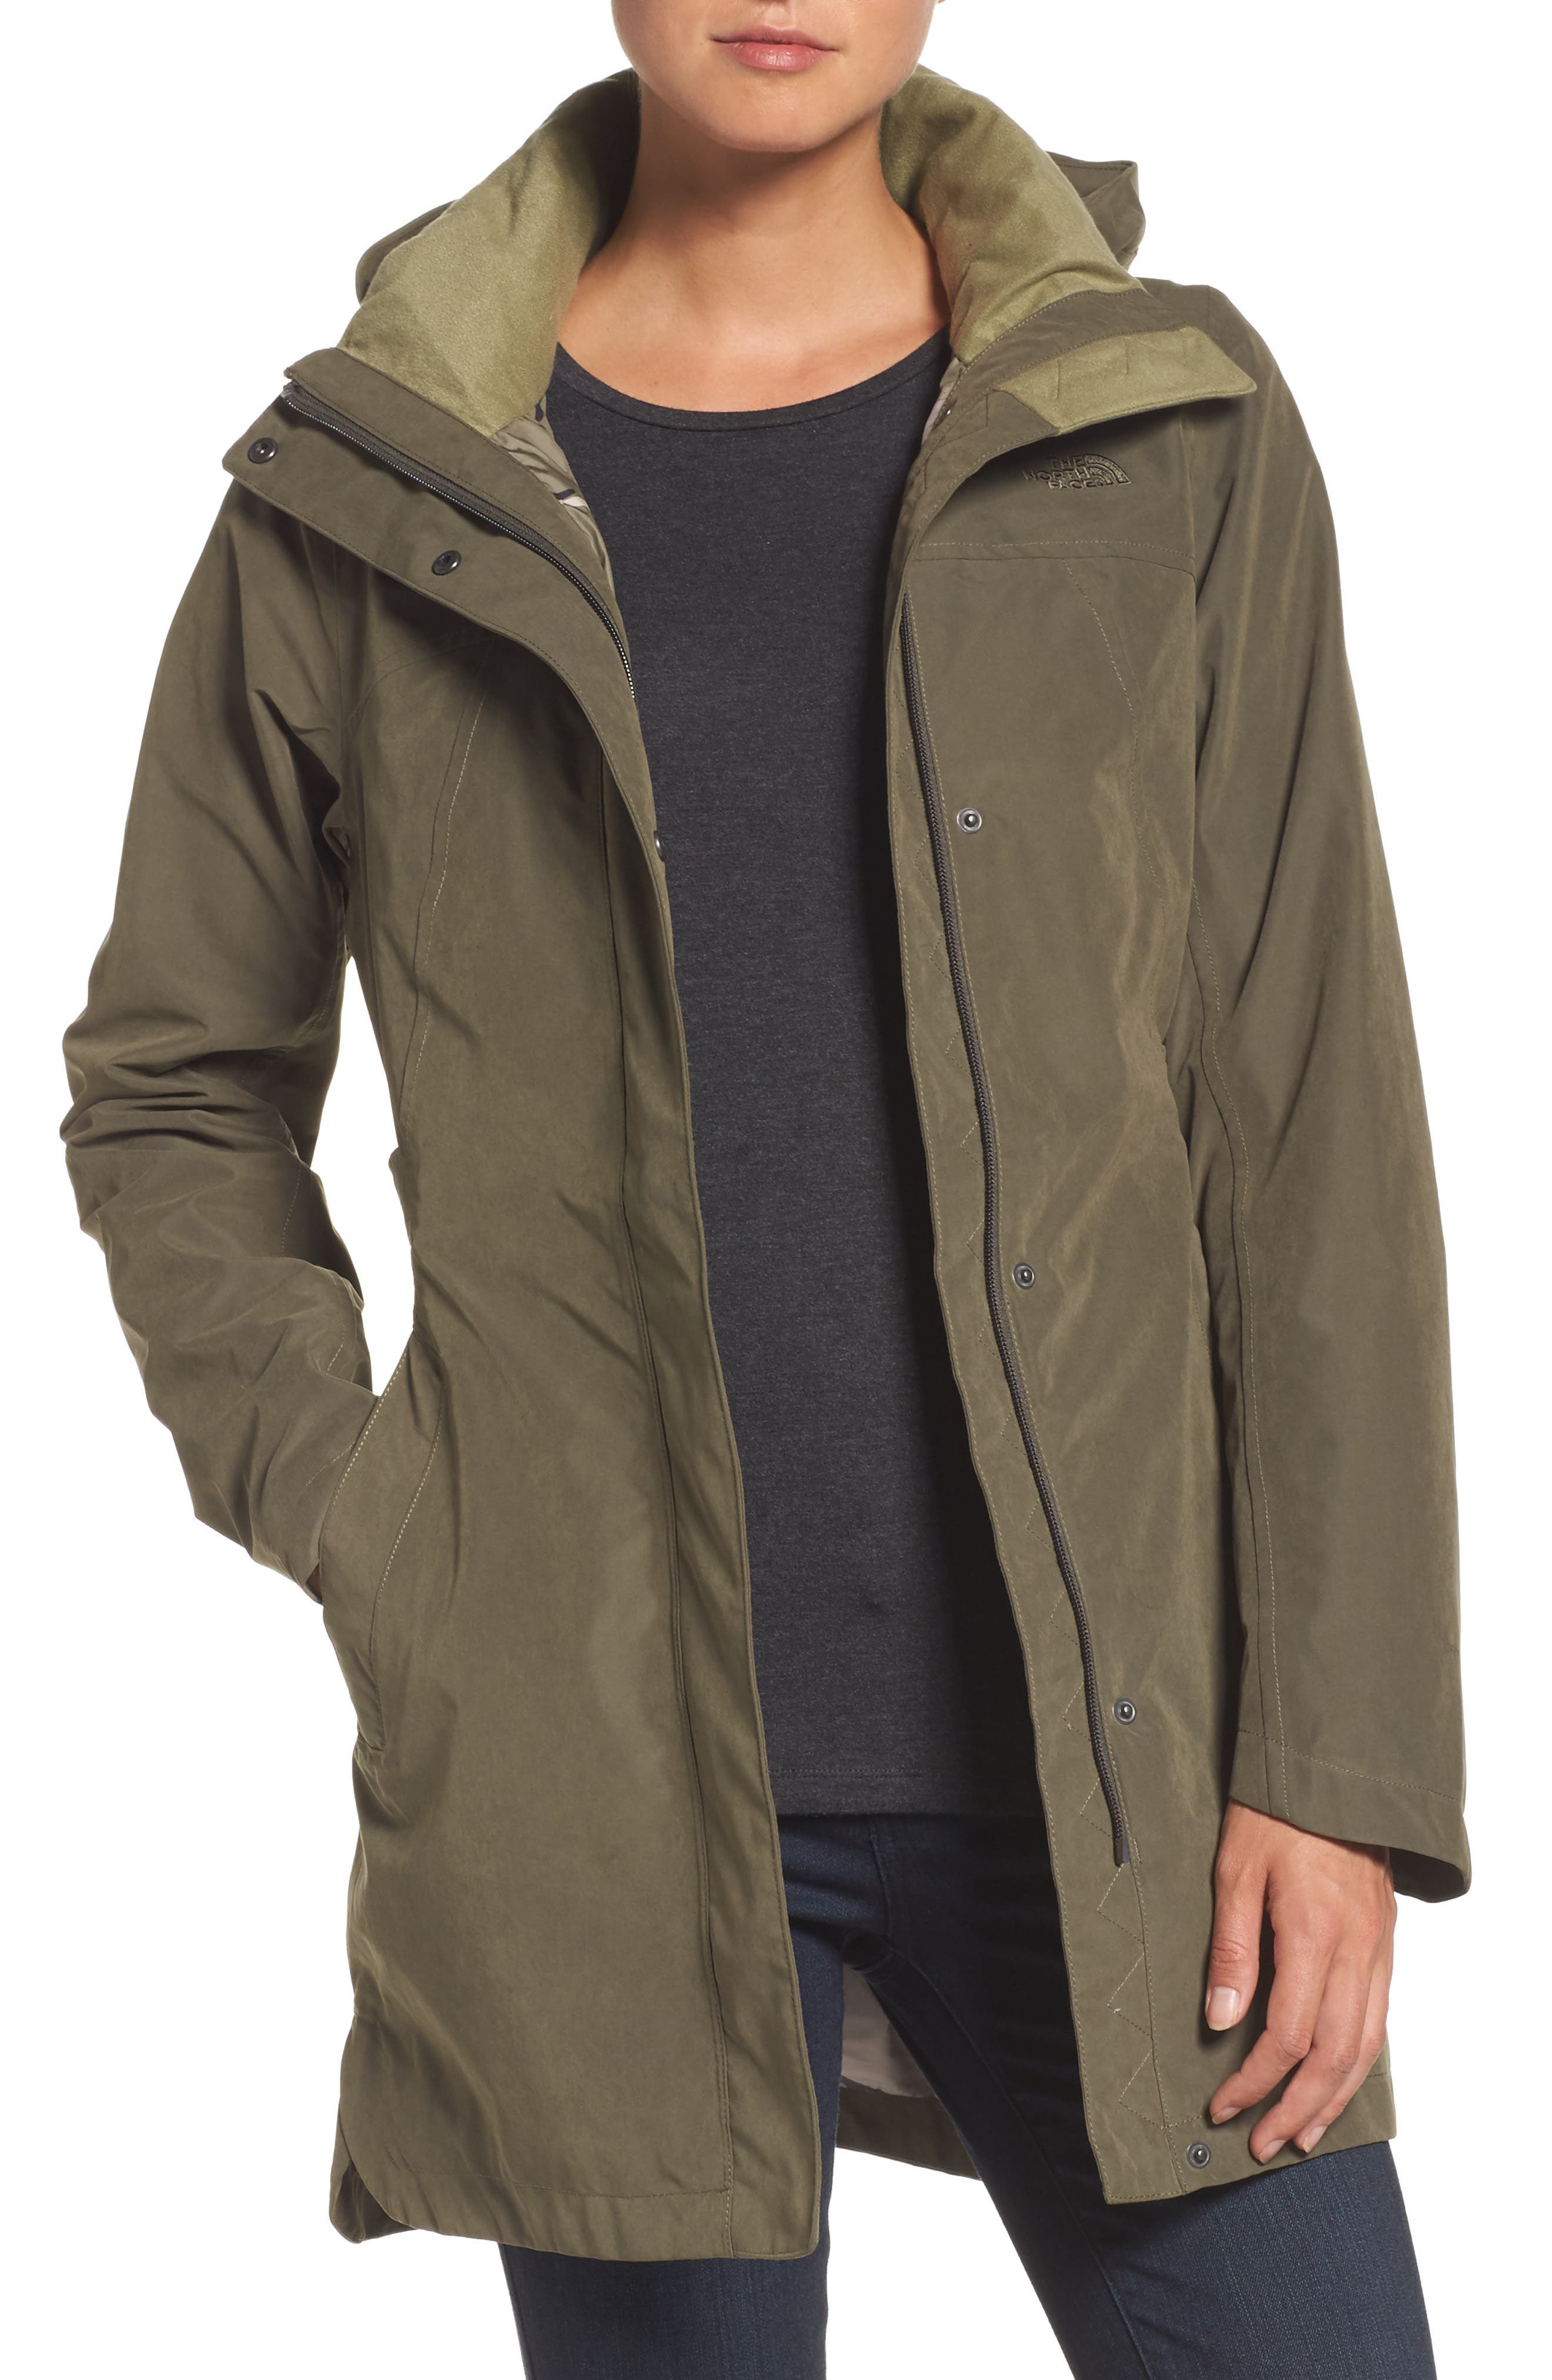 Laney II Trench Raincoat,                         Main,                         color, New Taupe Green